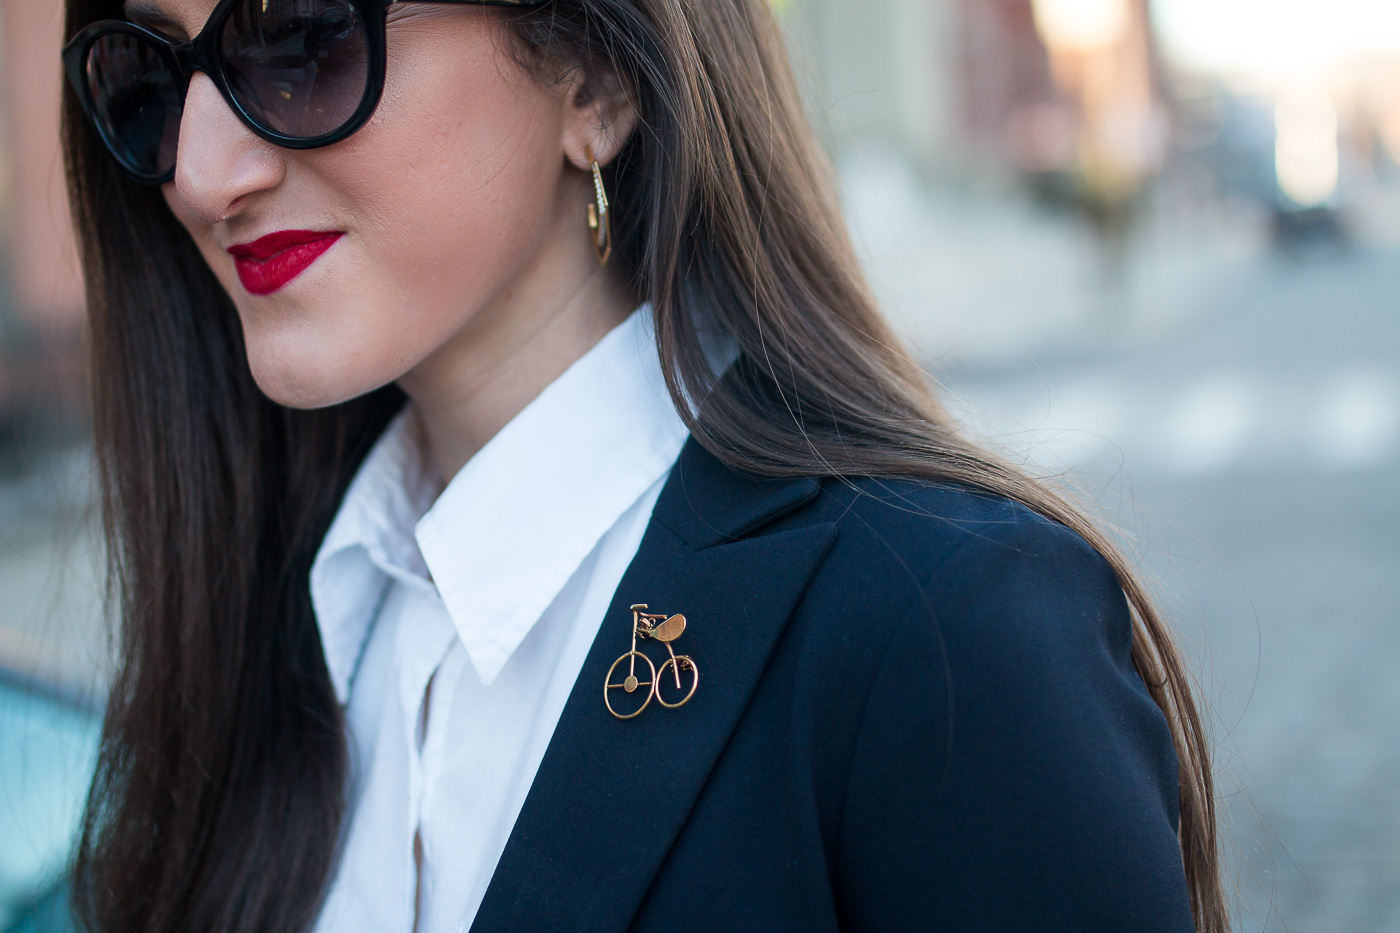 Brooch 2018 trends